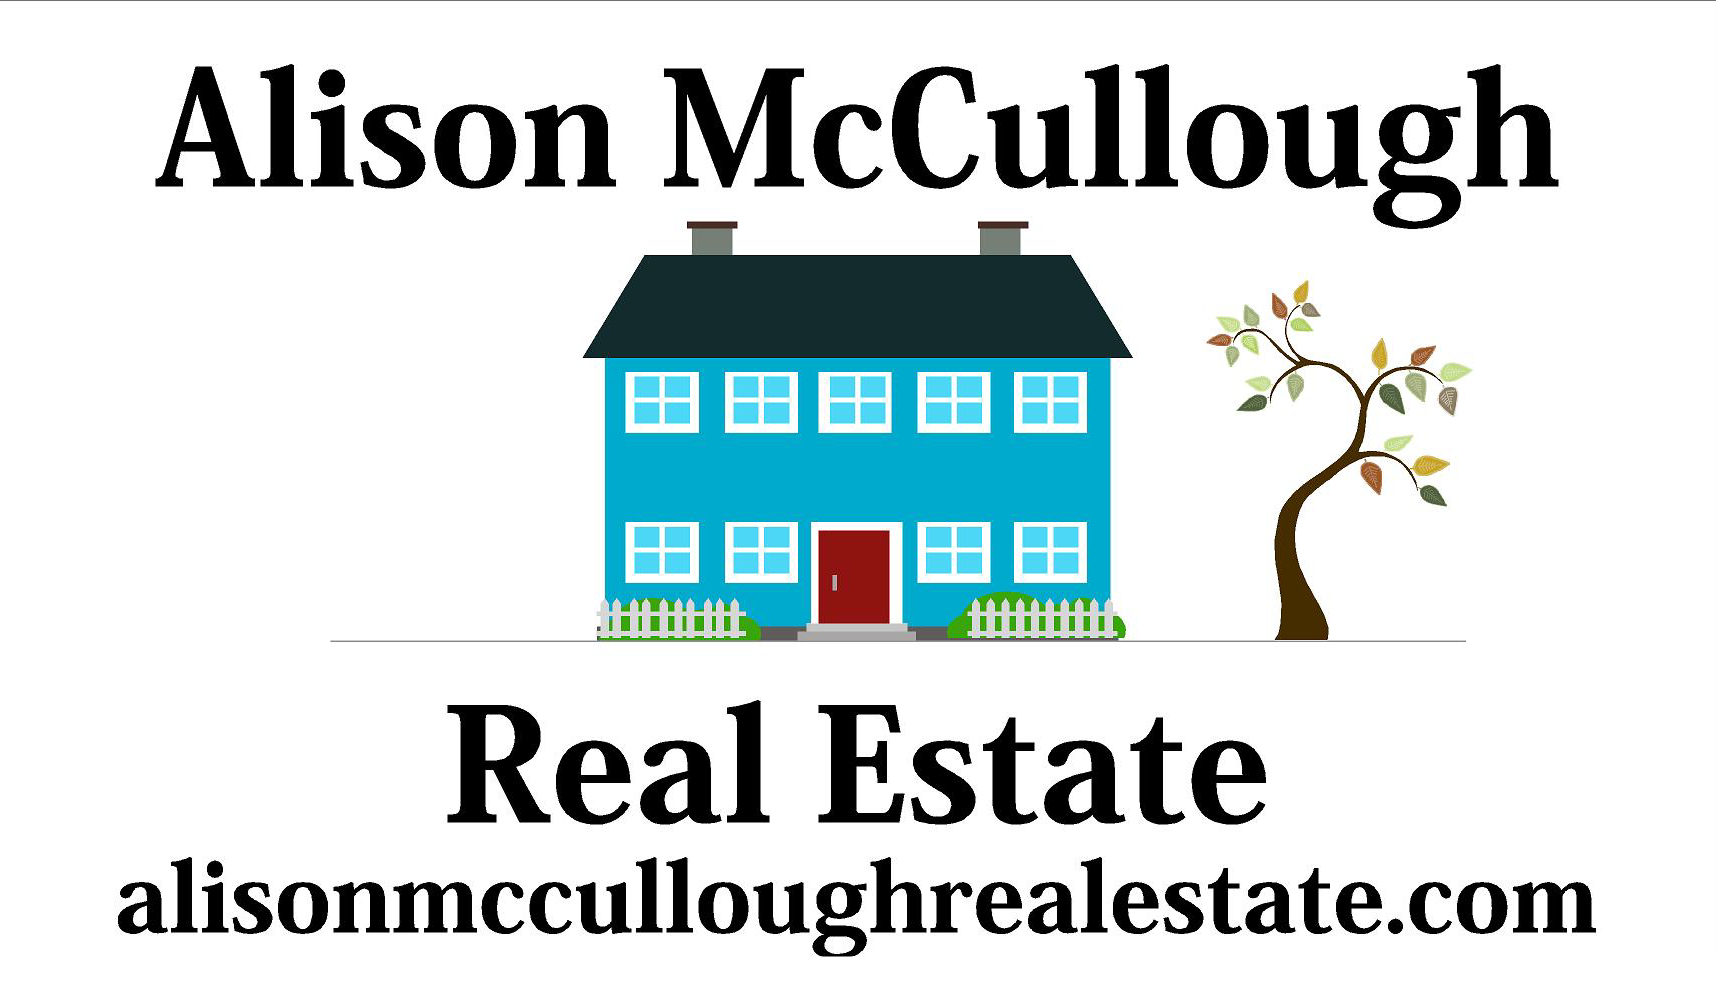 alisonmcculloughrealestate_logo.png